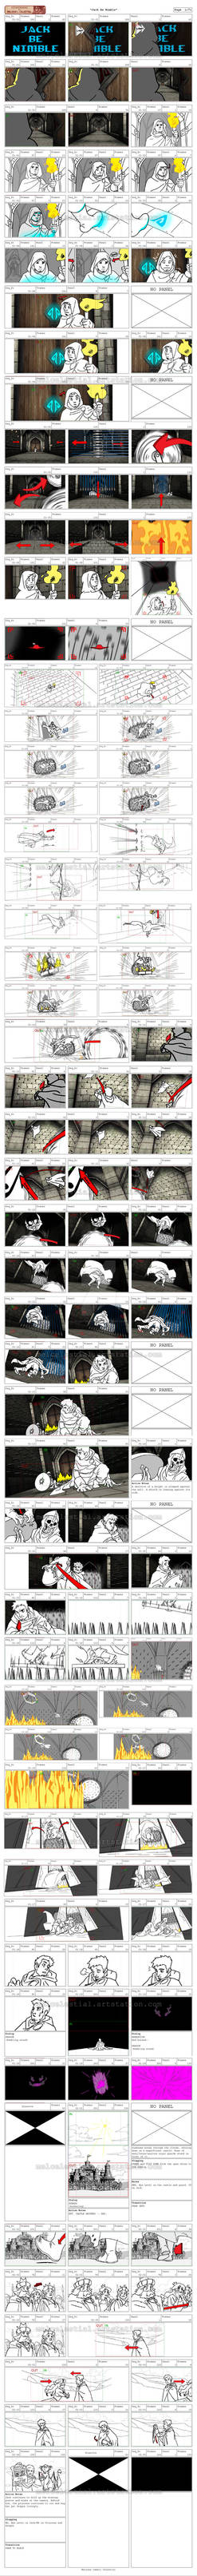 Jack Be Nimble Storyboard